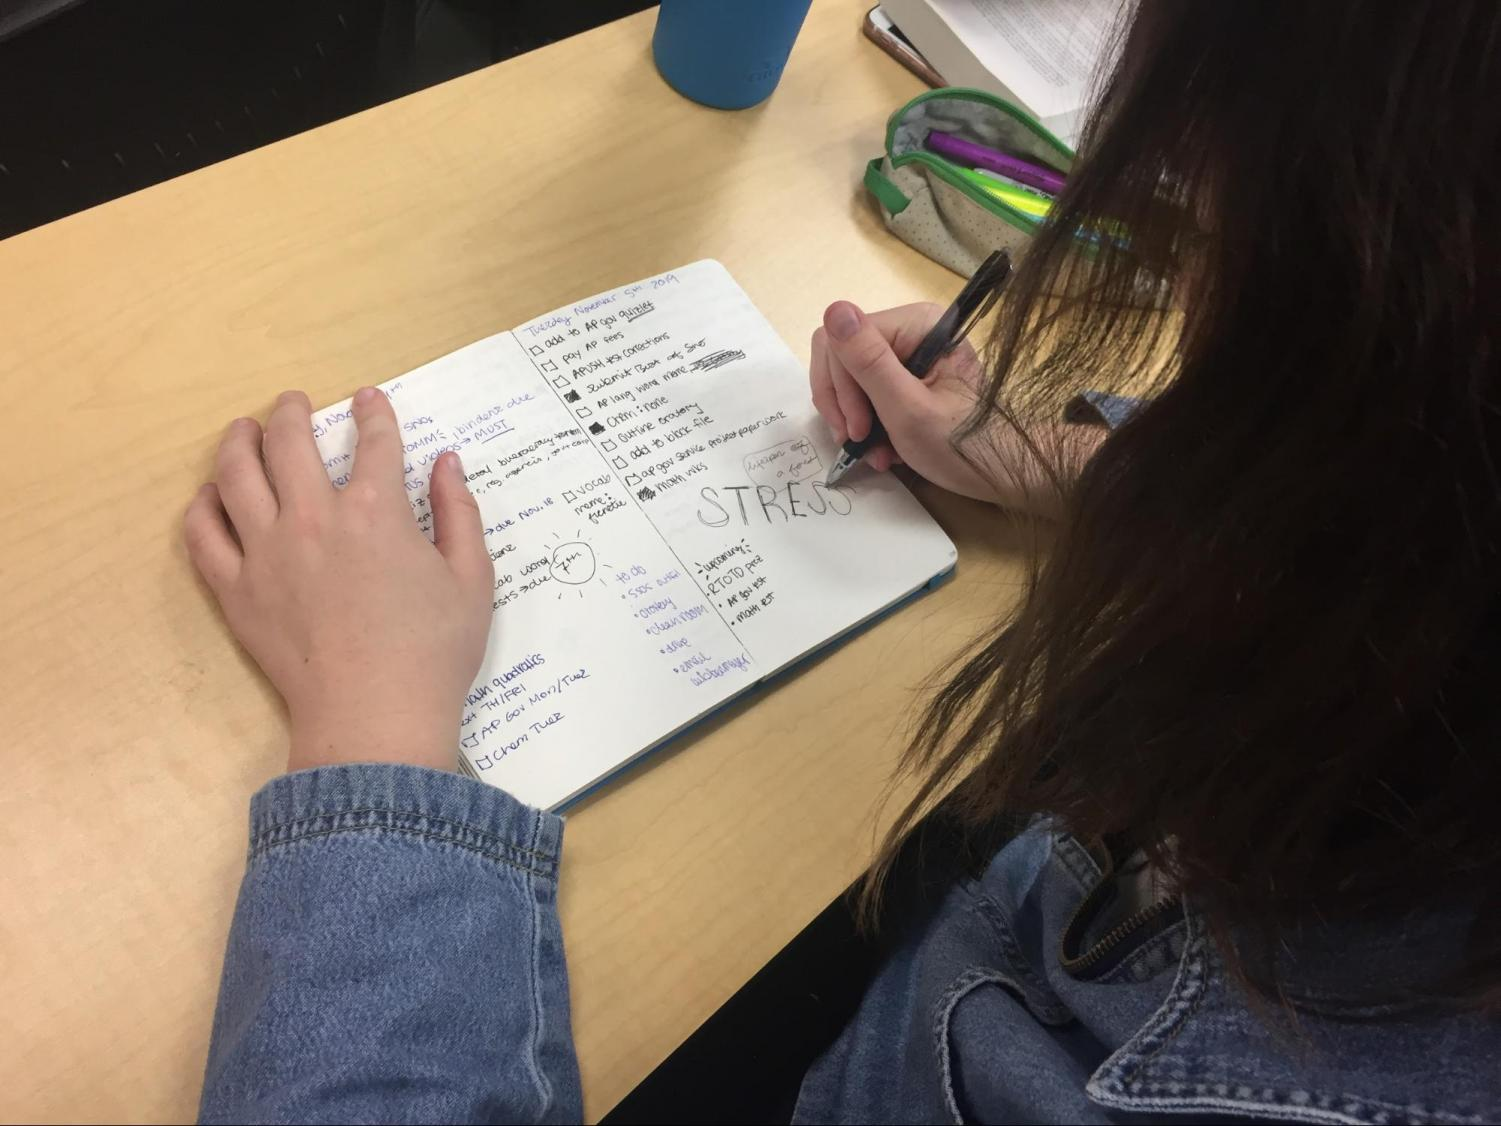 A student reviews her planner and deals with impending stress.